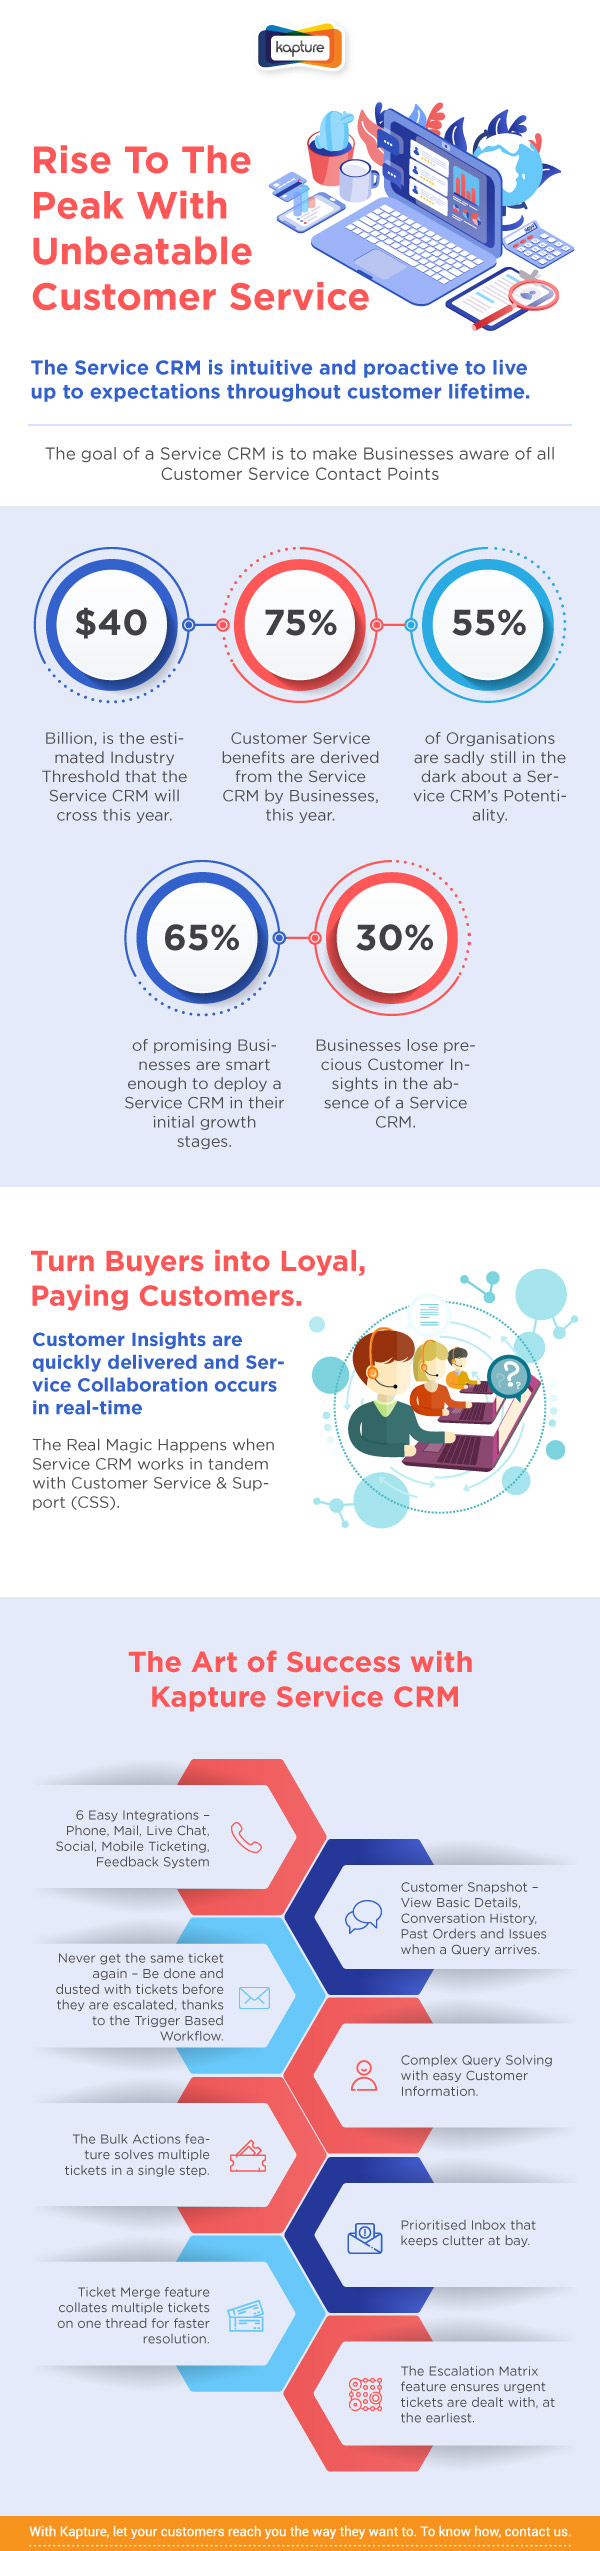 A Service CRM is your ticket to providing high quality customer service to clients from start to finish. Find out how a Service CRM is a unique solution and how Kapture has managed to elevate it to an advanced Industry-ready system.